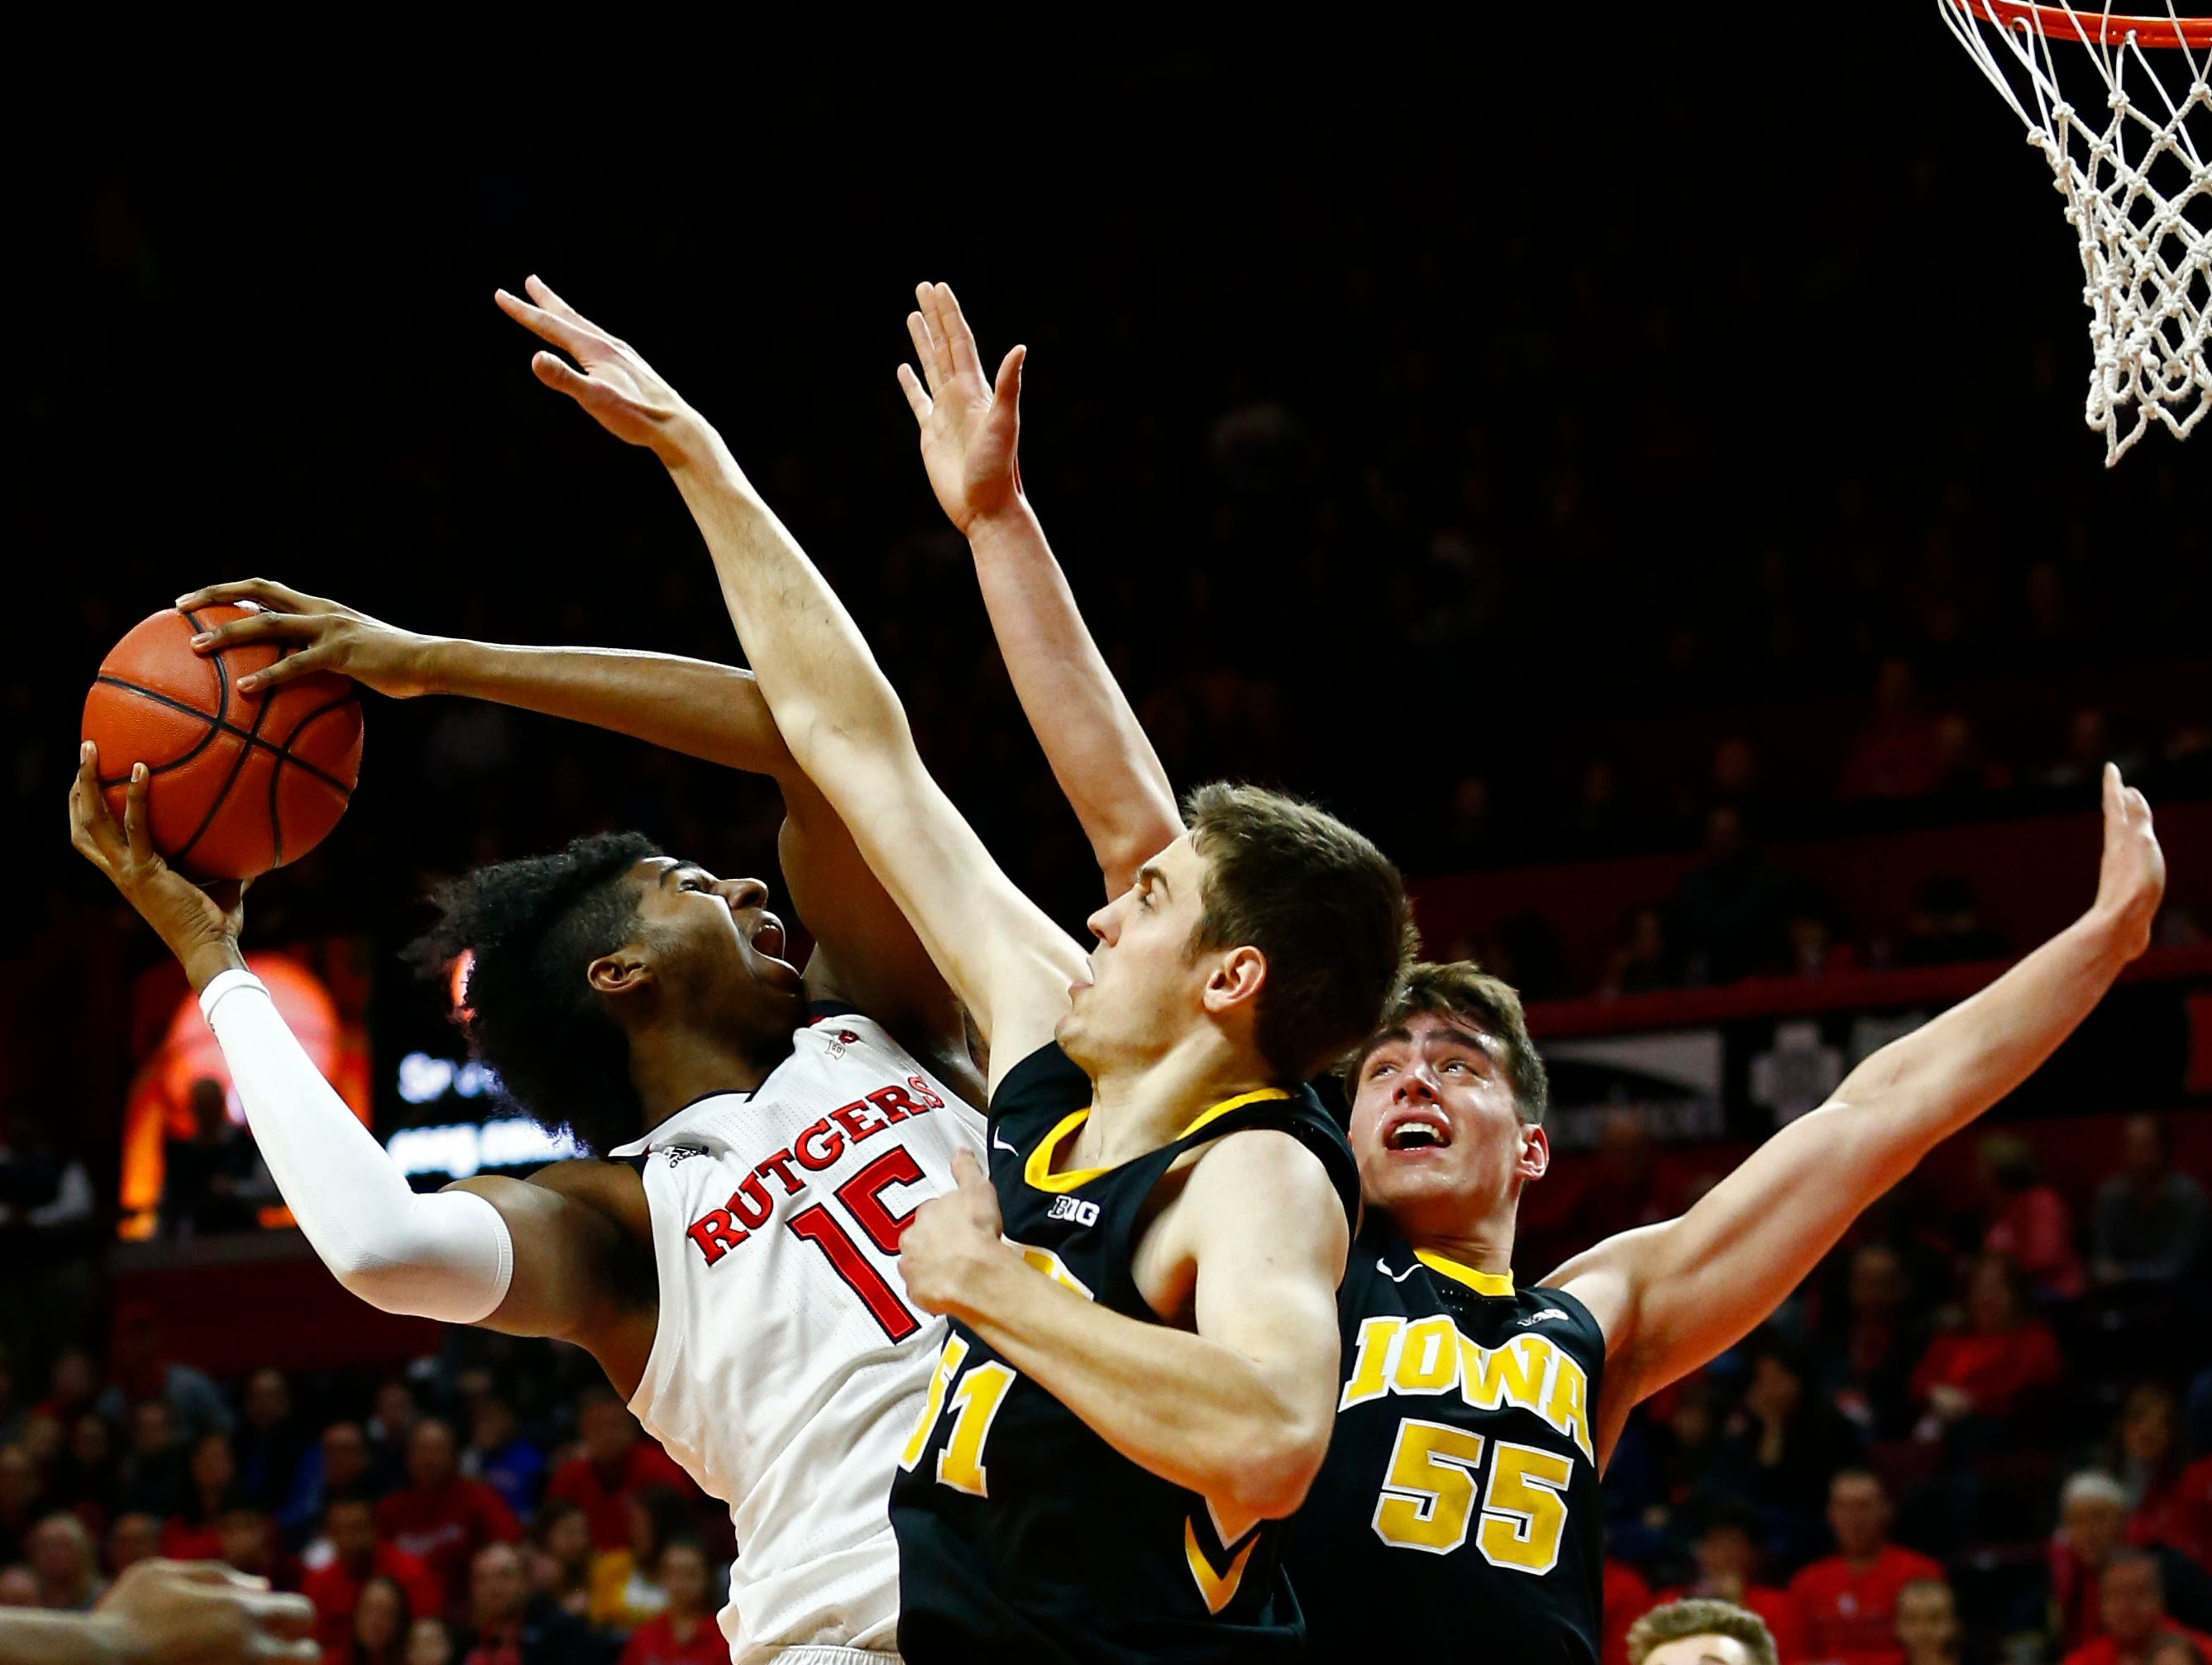 Iowa Hawkeyes forward Nicholas Baer (51) and forward Luka Garza (55) defend against Rutgers Scarlet Knights center Myles Johnson (15) during the first half at Rutgers Athletic Center (RAC). Mandatory Credit: Noah K. Murray-USA TODAY Sports